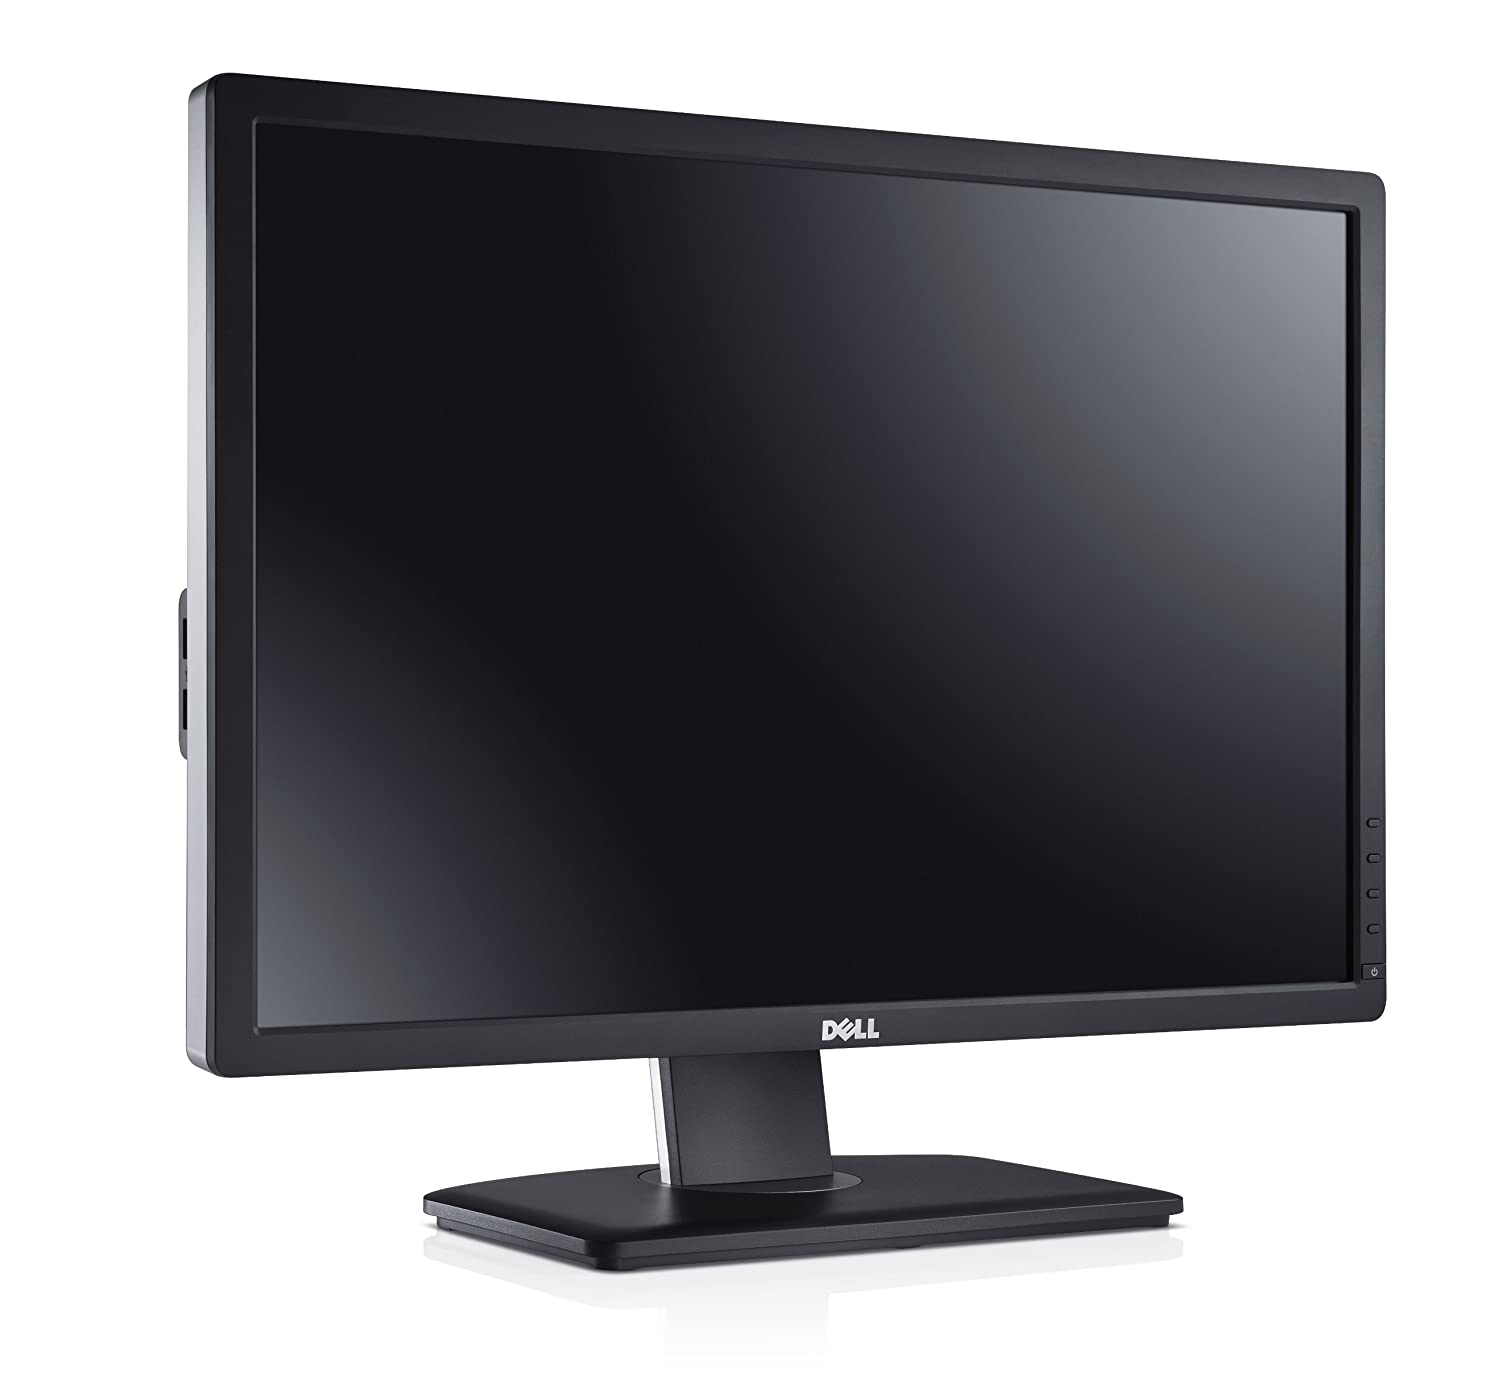 Dell UltraSharp U2412M 24″ LED LCD Monitor – 16:10 – 8 ms $278.99